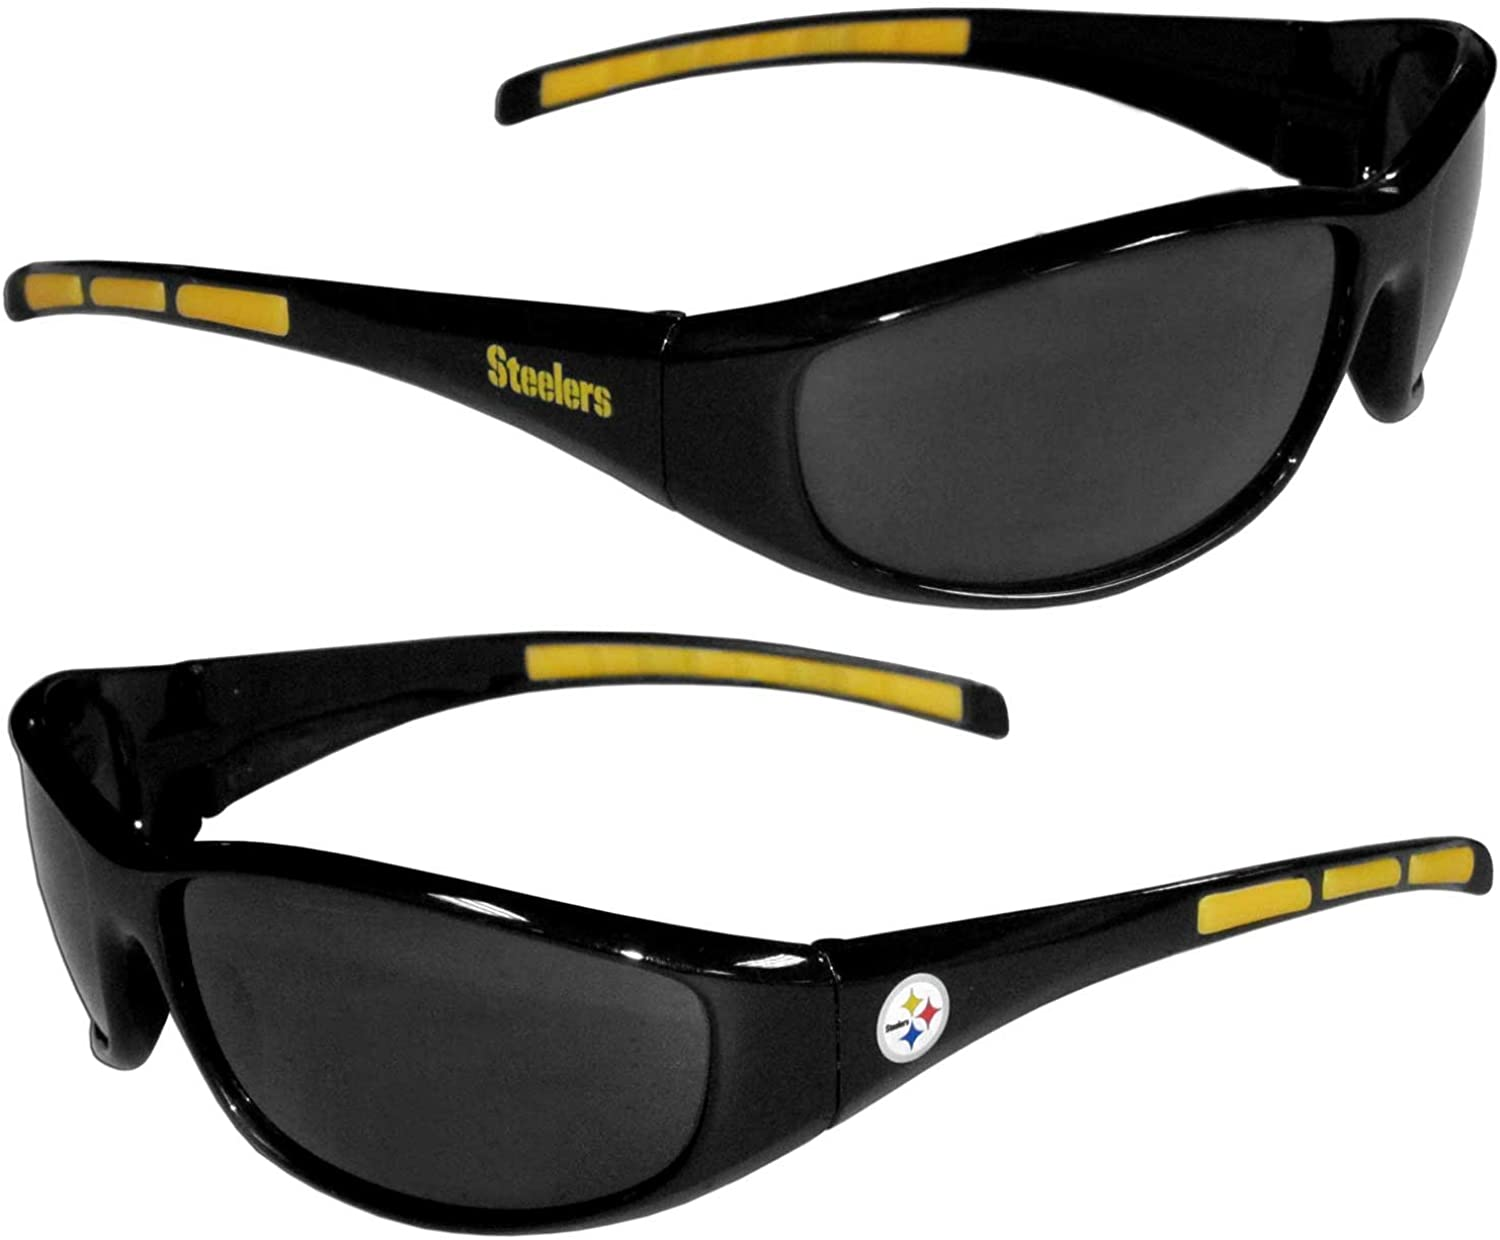 Siskiyou Pittsburgh Steelers Wrap Sunglasses